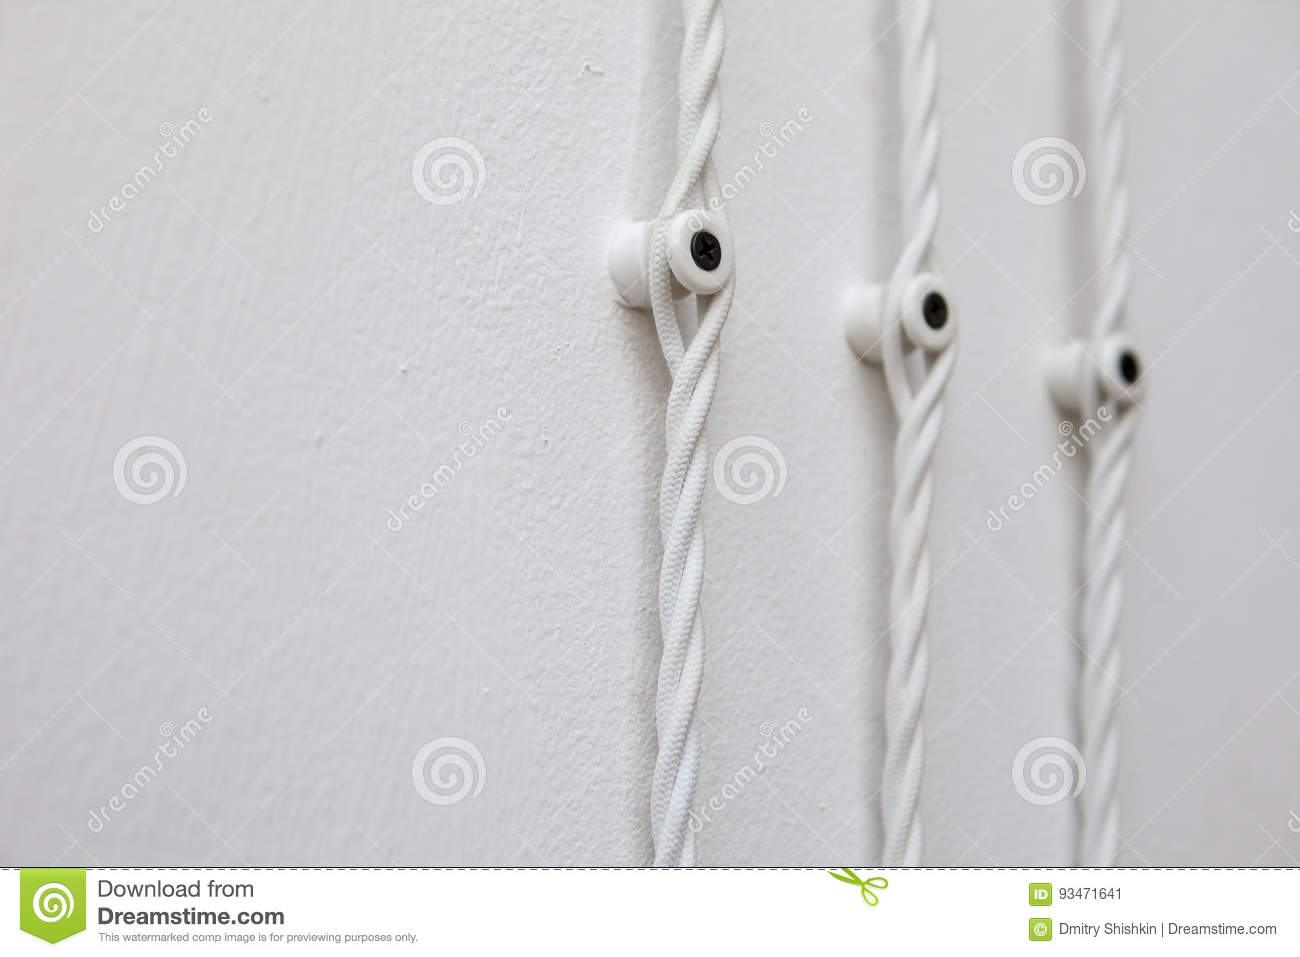 Vintage Wiring On White Wall, Electric Wire Stock Image - Image of ...